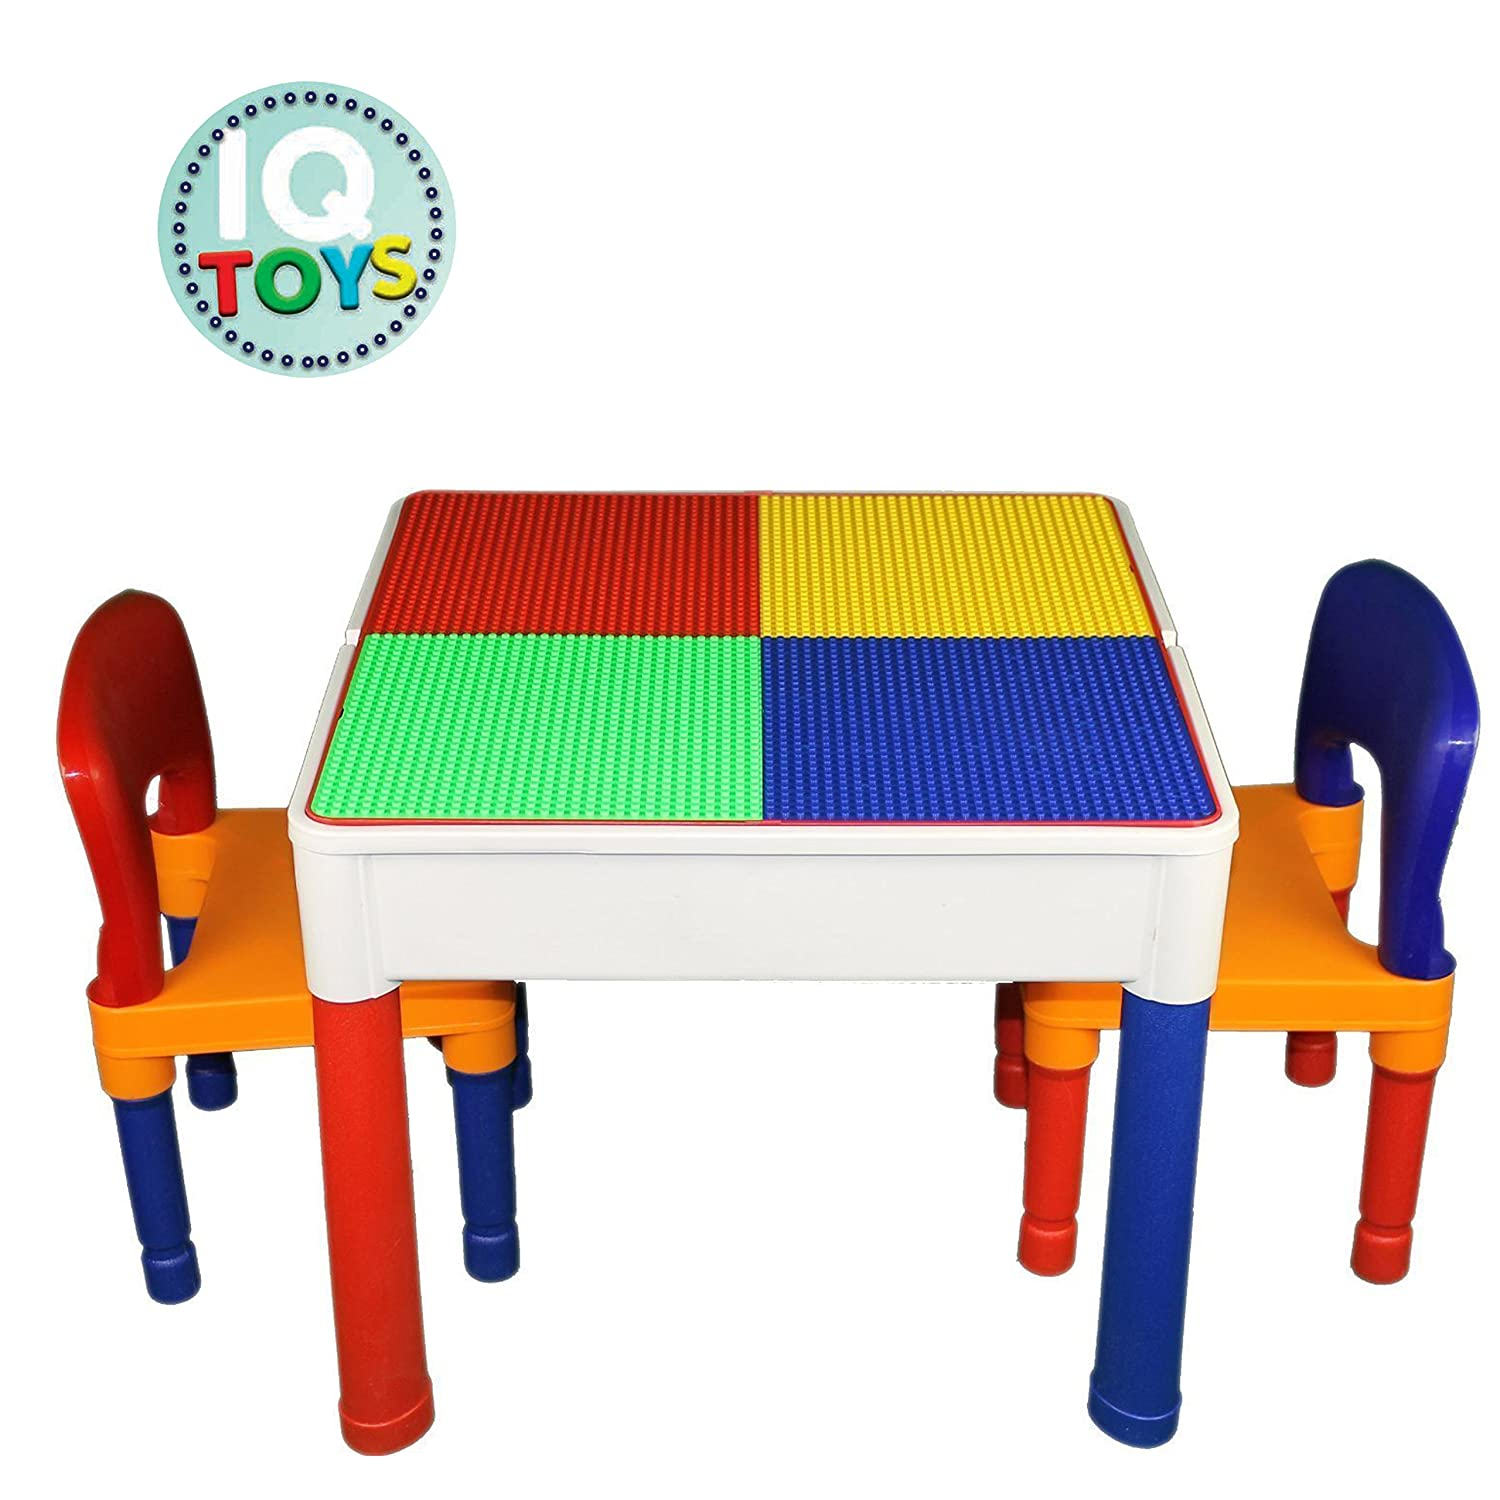 b ie UTF8&node amazon kitchen chairs Kids Table Chairs 3 in 1 Lego Duplo Compatible plus Storage